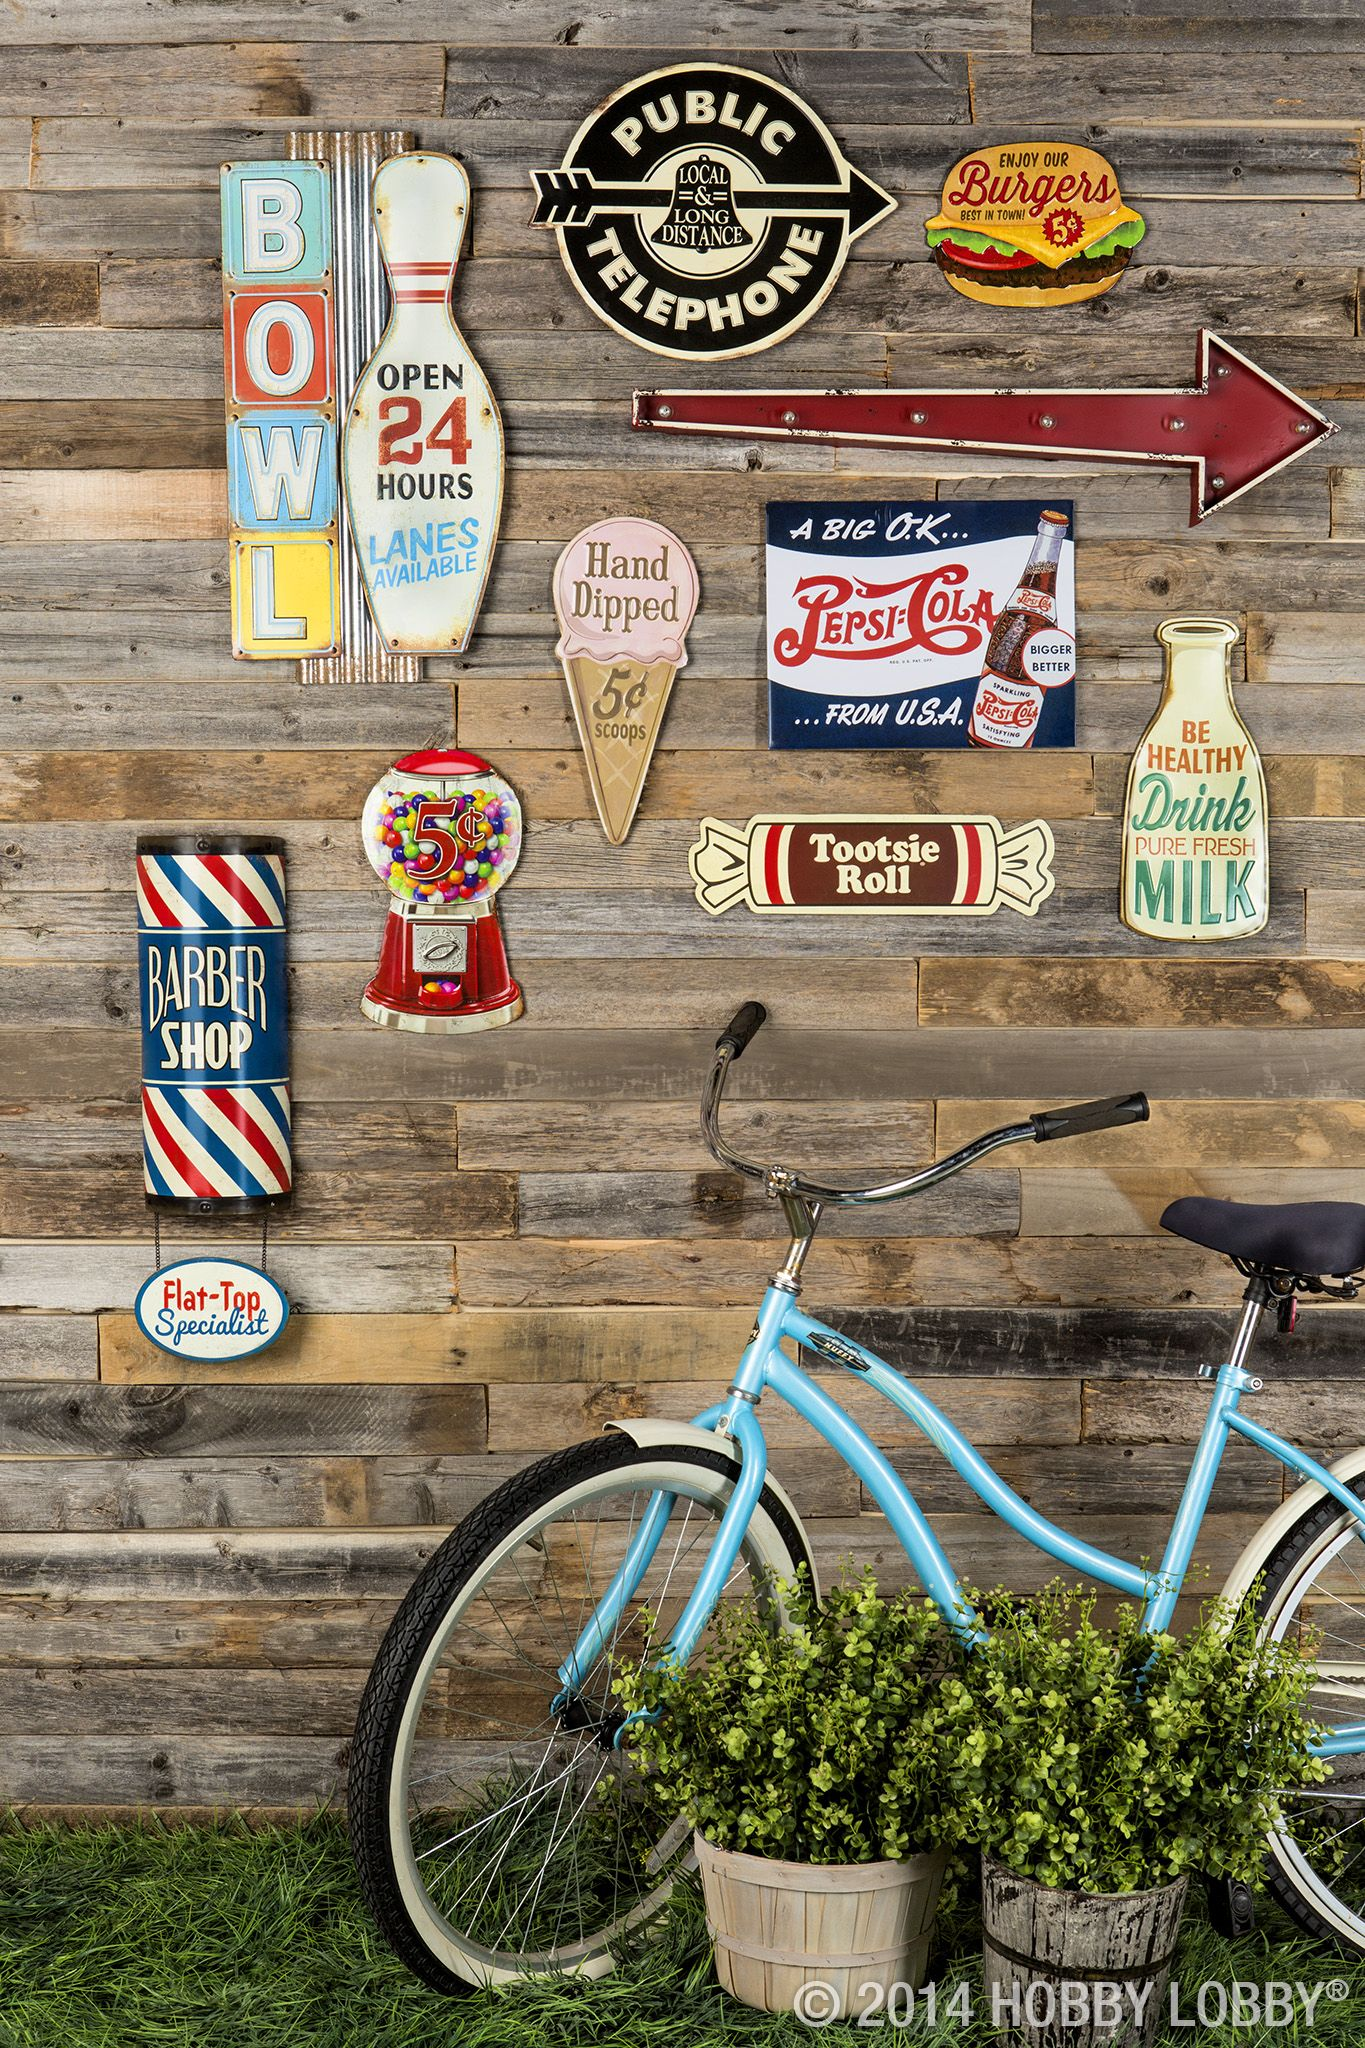 Step back in time with our classic metal signs! This always-in-style décor will add retro flare to your home or office. #collageboard